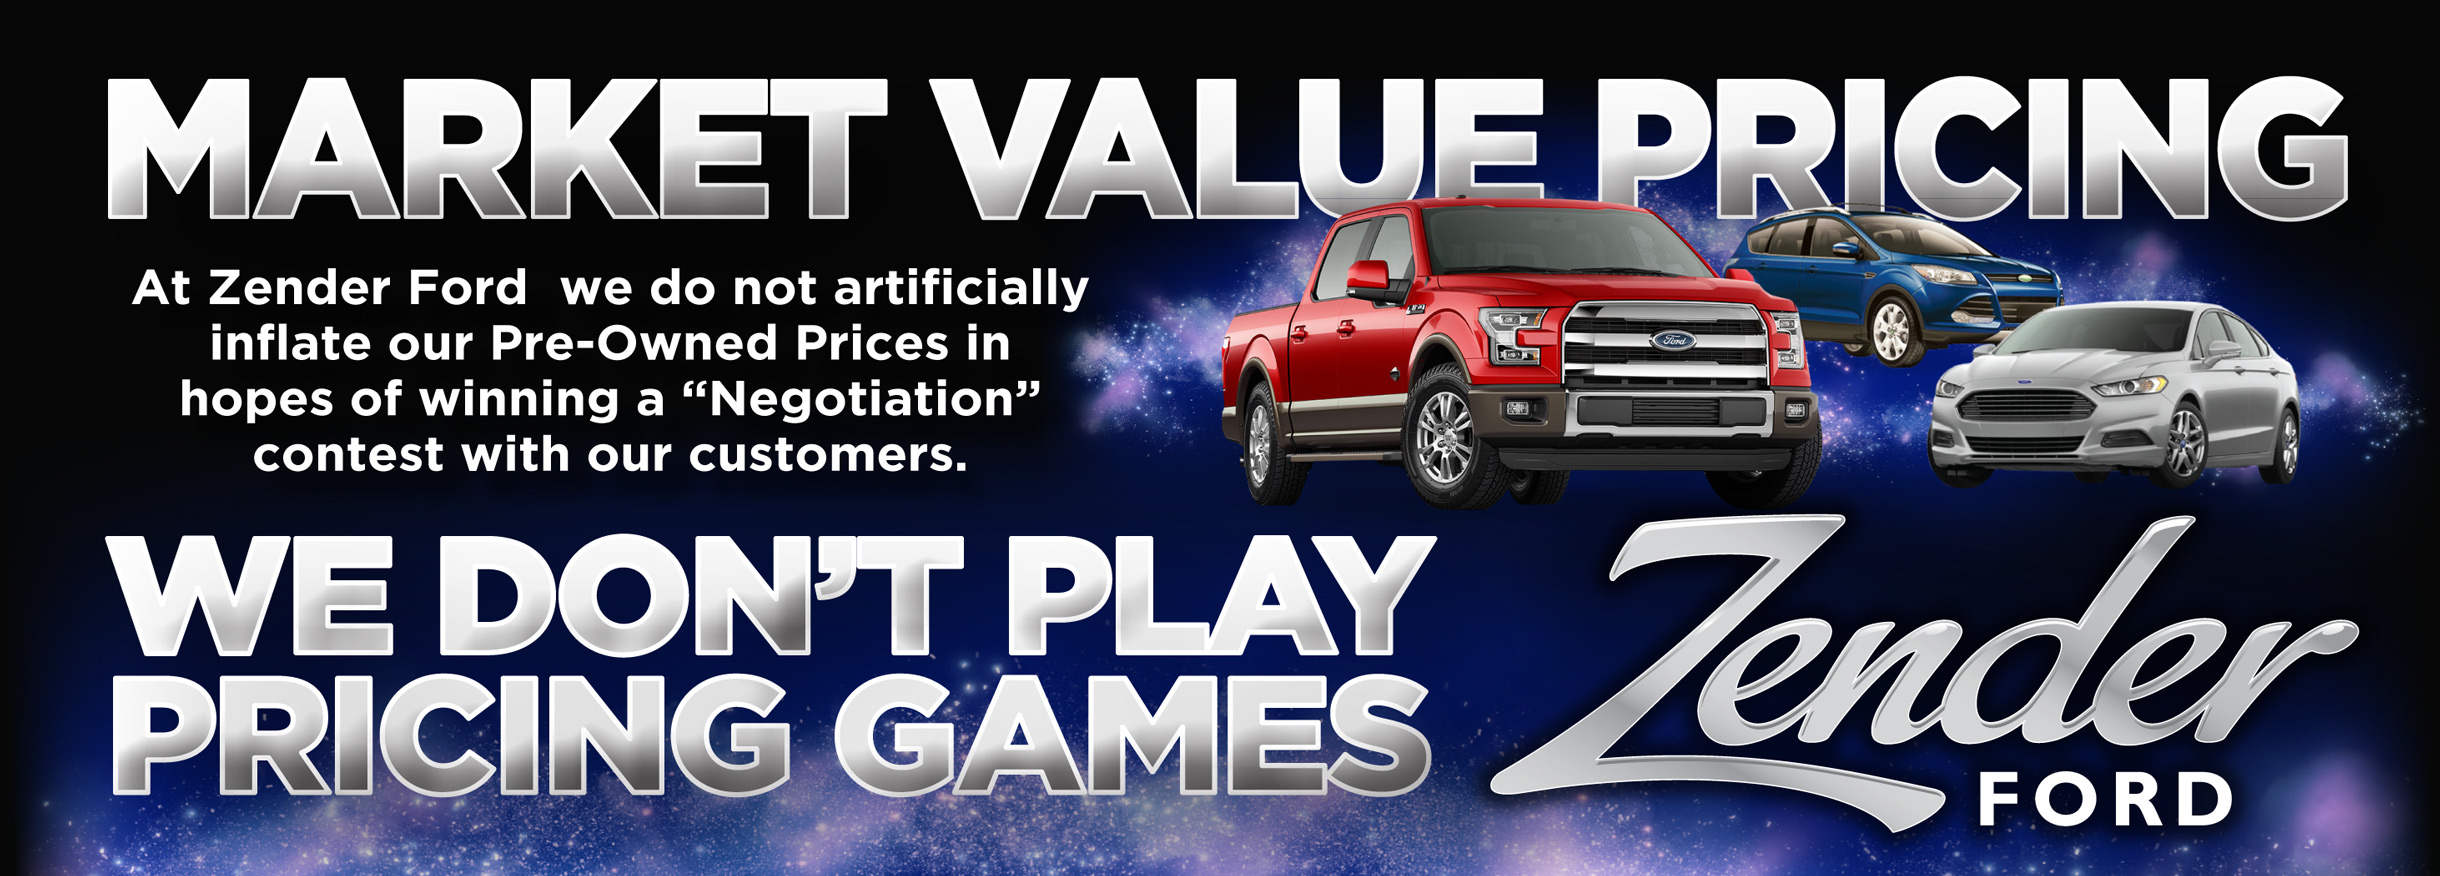 Market Value Pricing at Zender Ford. We Don't Play Games!